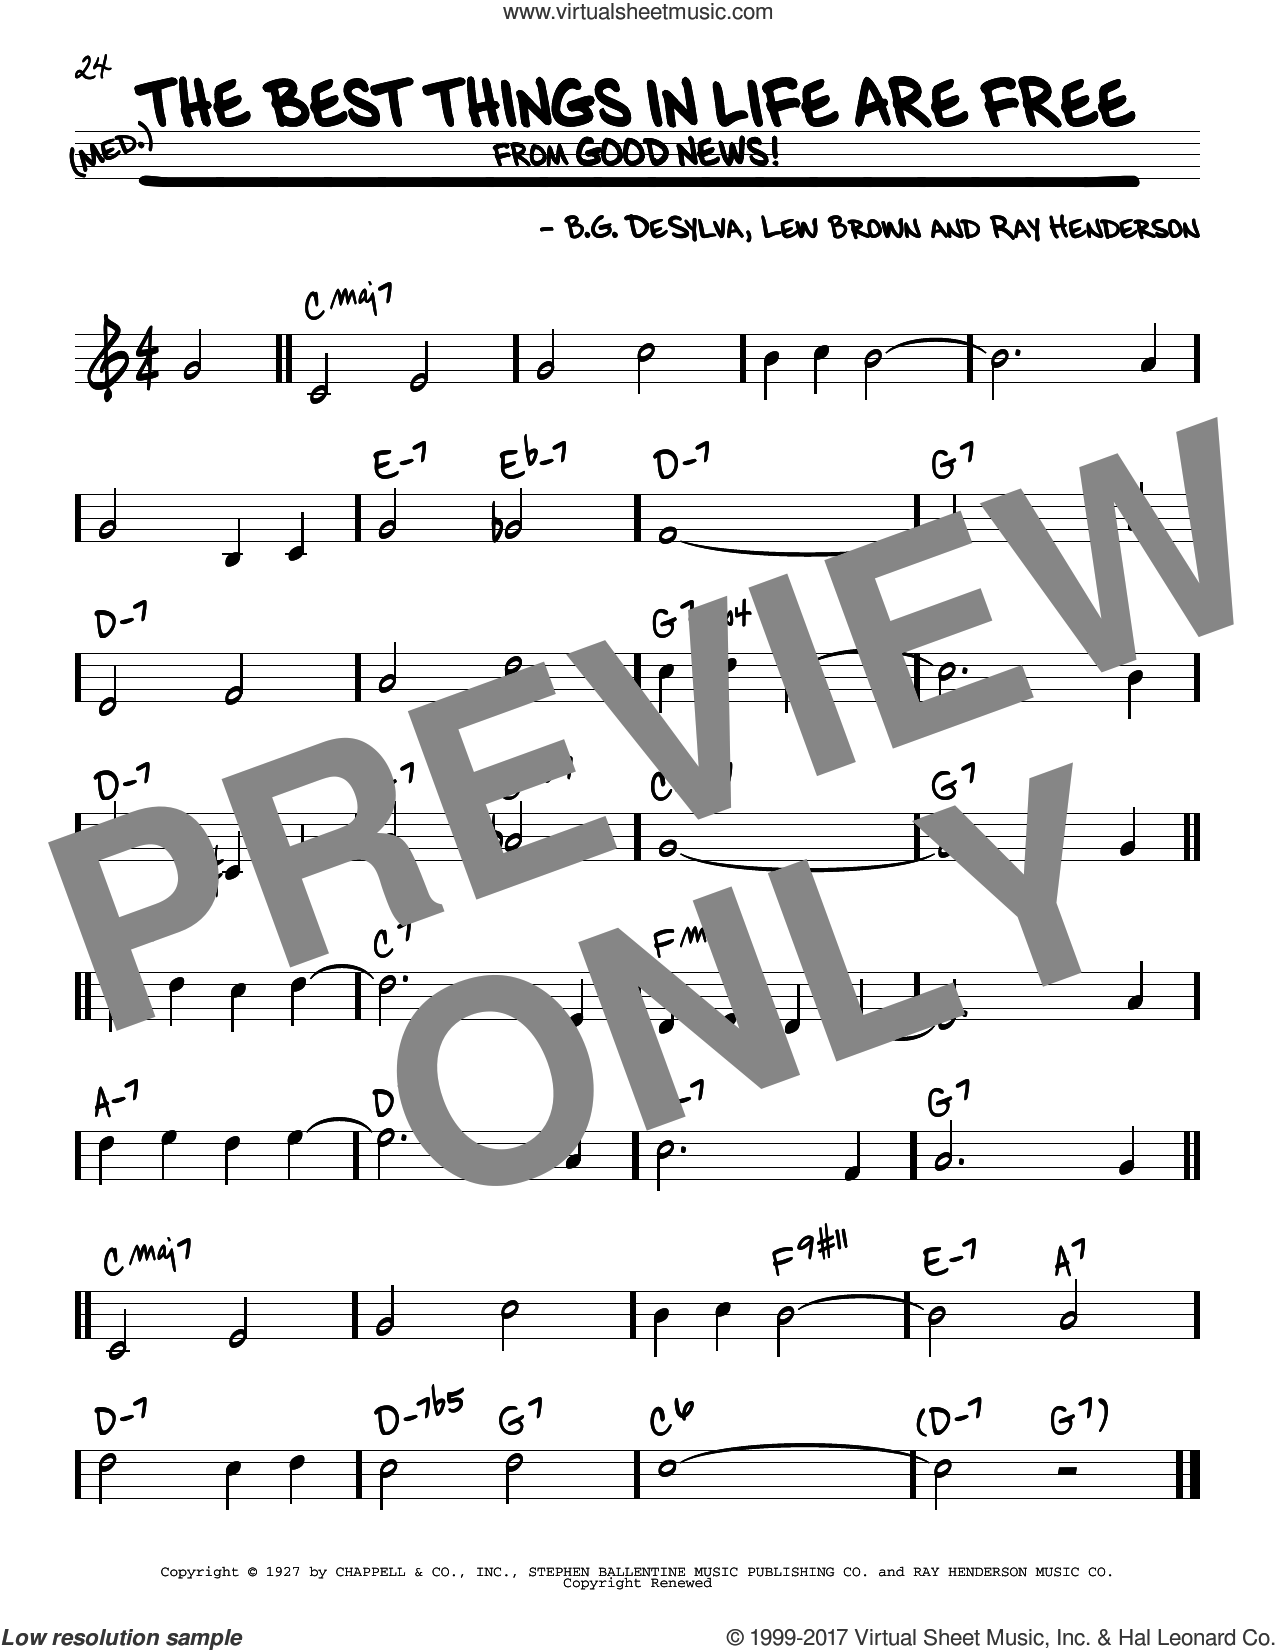 The Best Things In Life Are Free sheet music for voice and other instruments (real book) by Ray Henderson, Buddy DeSylva and Lew Brown, intermediate skill level